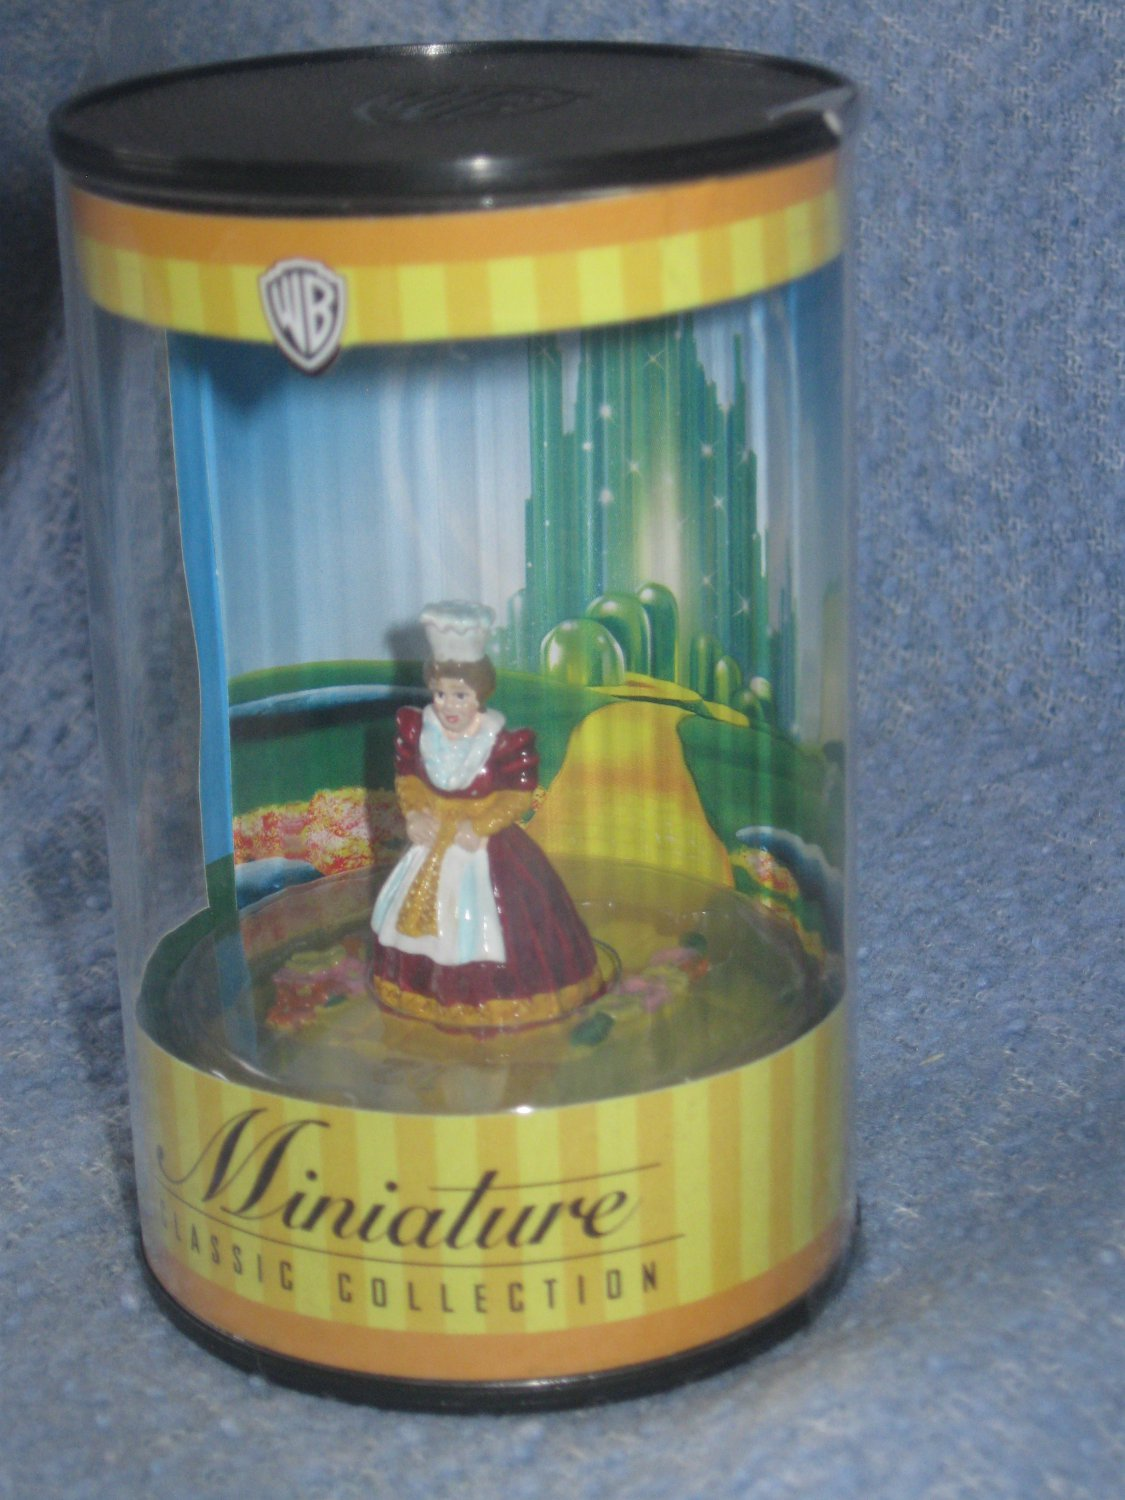 WB Wizard of Oz Miniature Classic Collection - Munchkin Town Lady